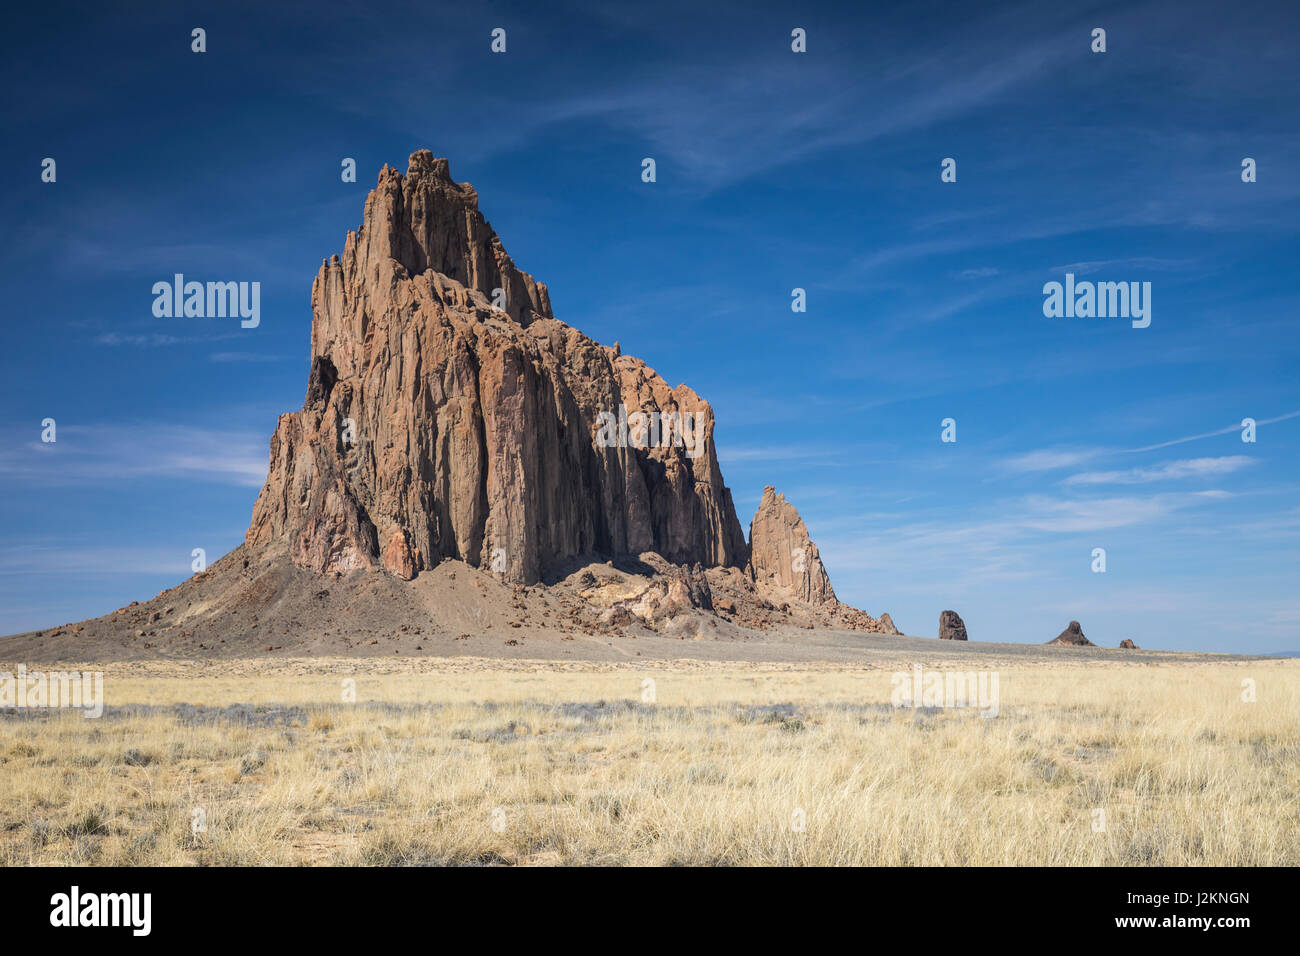 Shiprock formation, Shiprock, New Mexico. - Stock Image